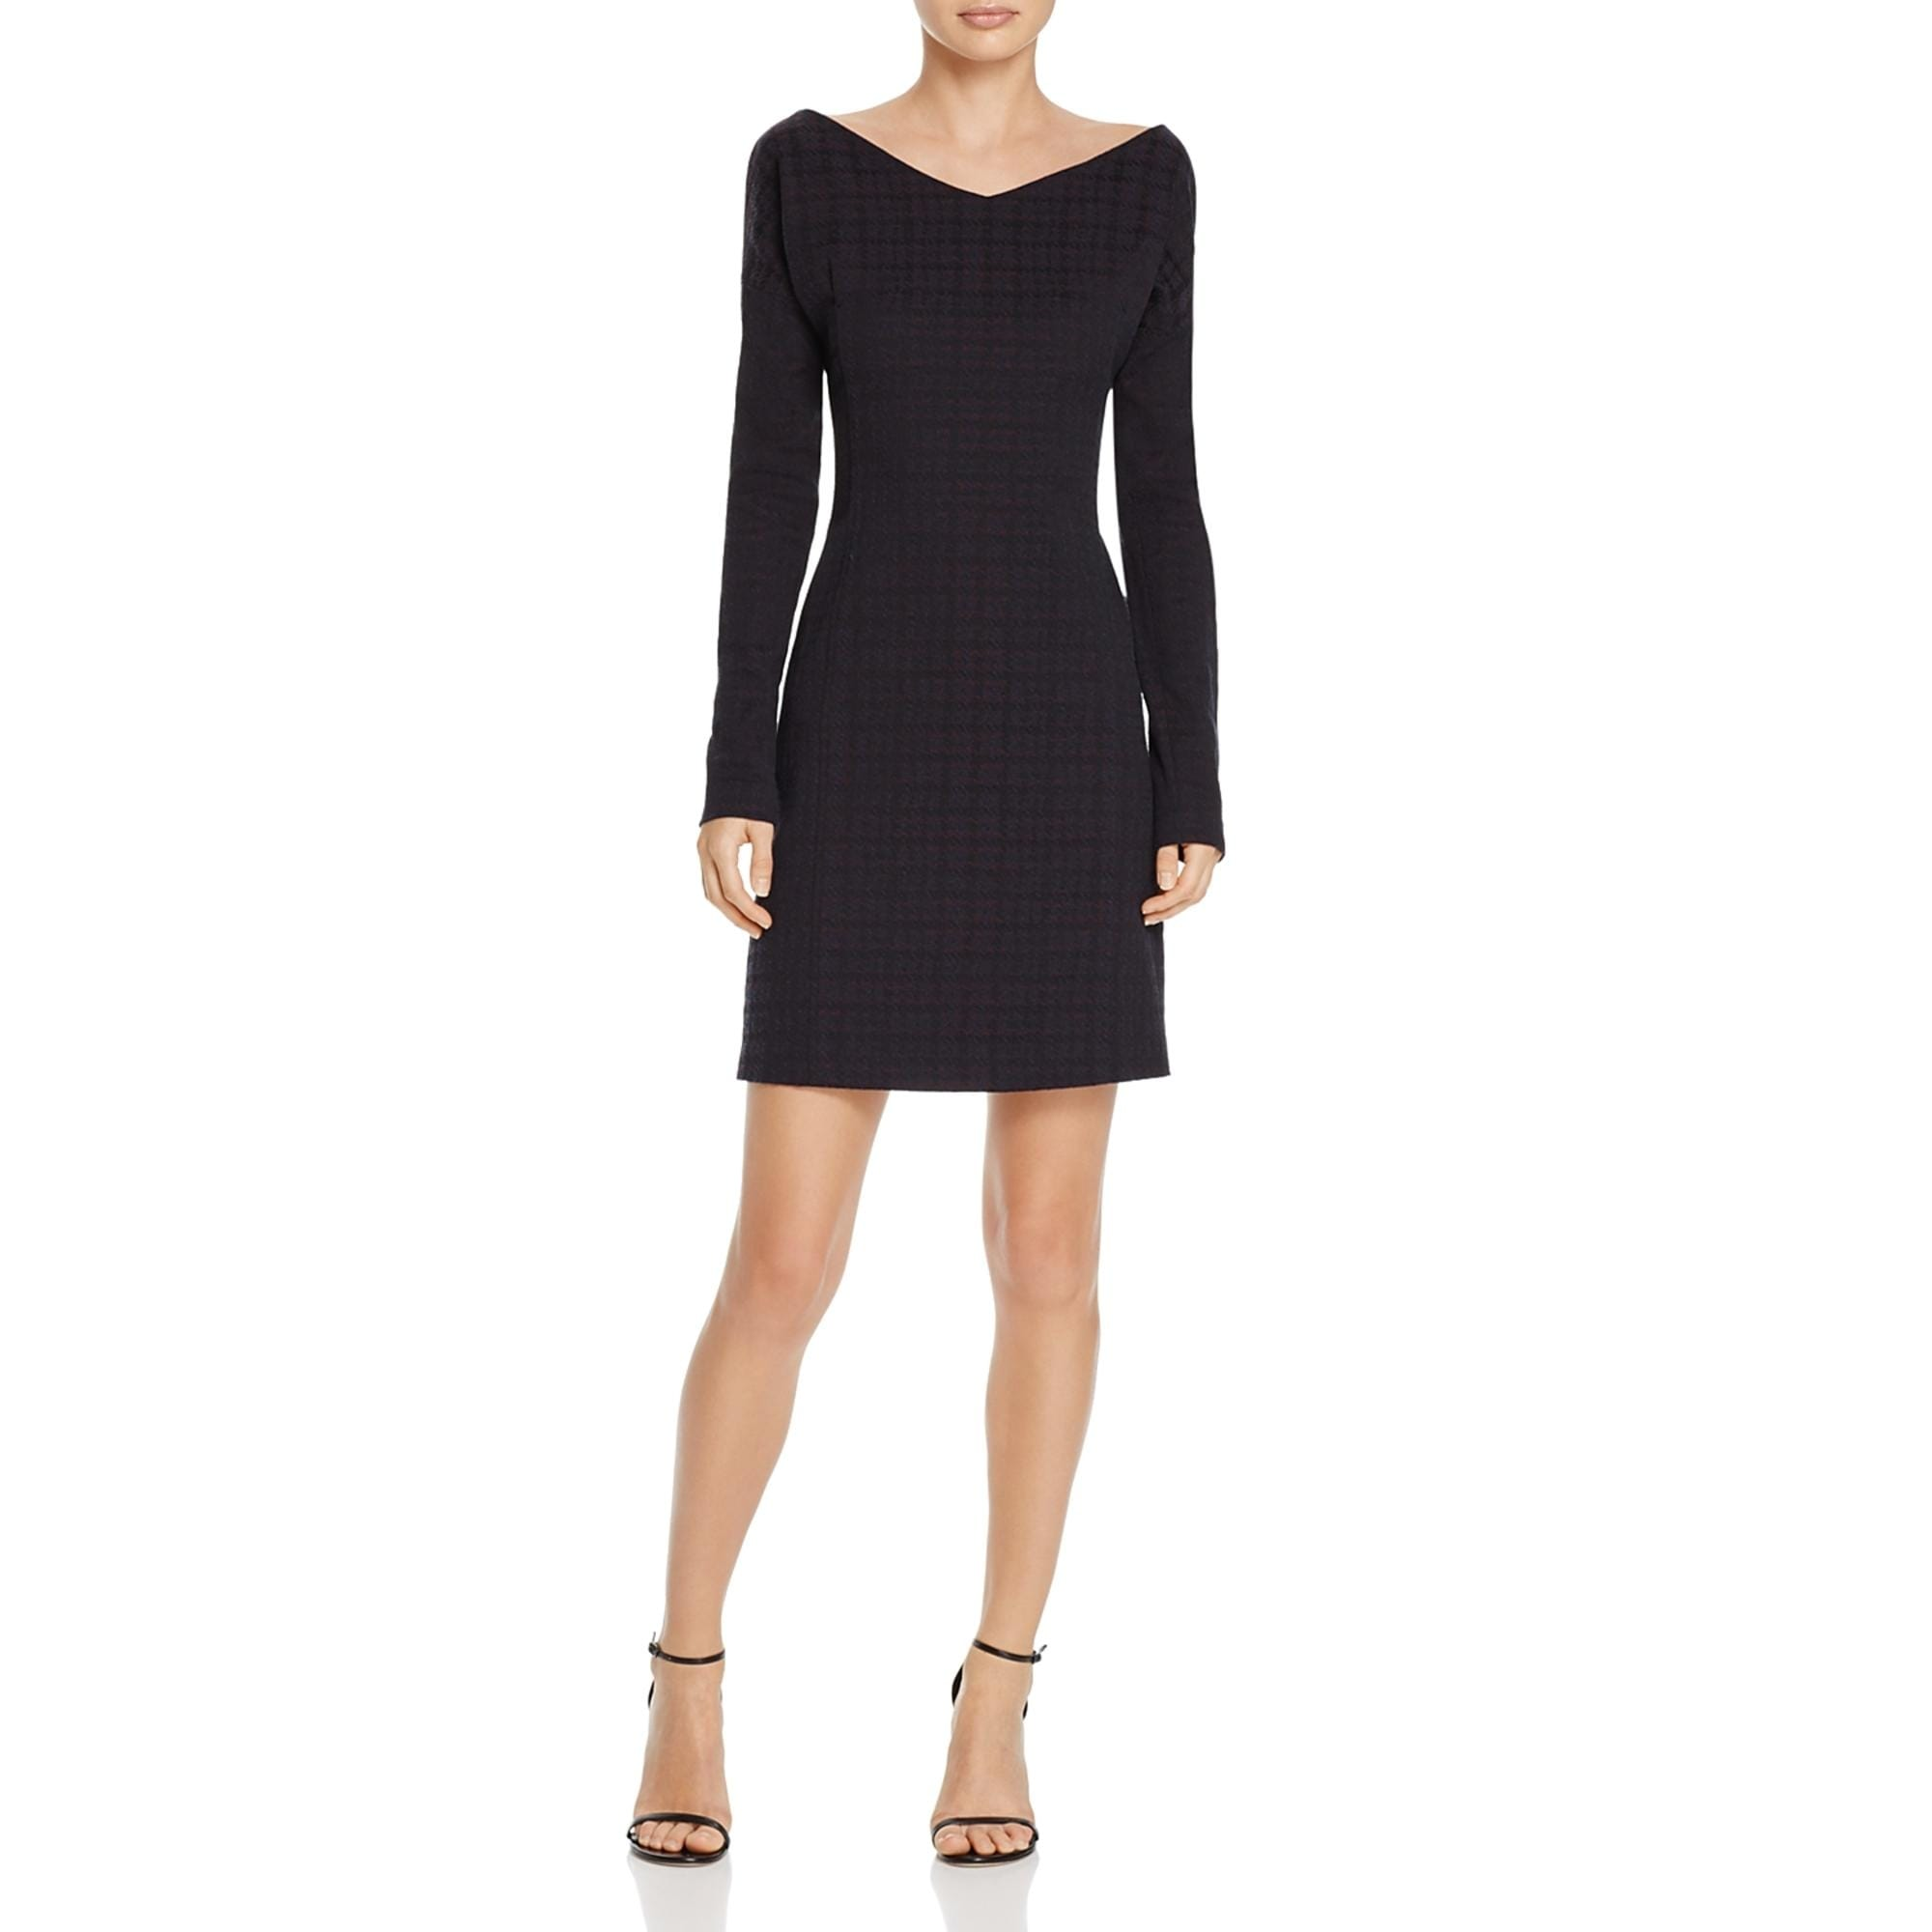 Theory Womens Mini Dress Houndstooth Print Dinner Party Overstock 23498921